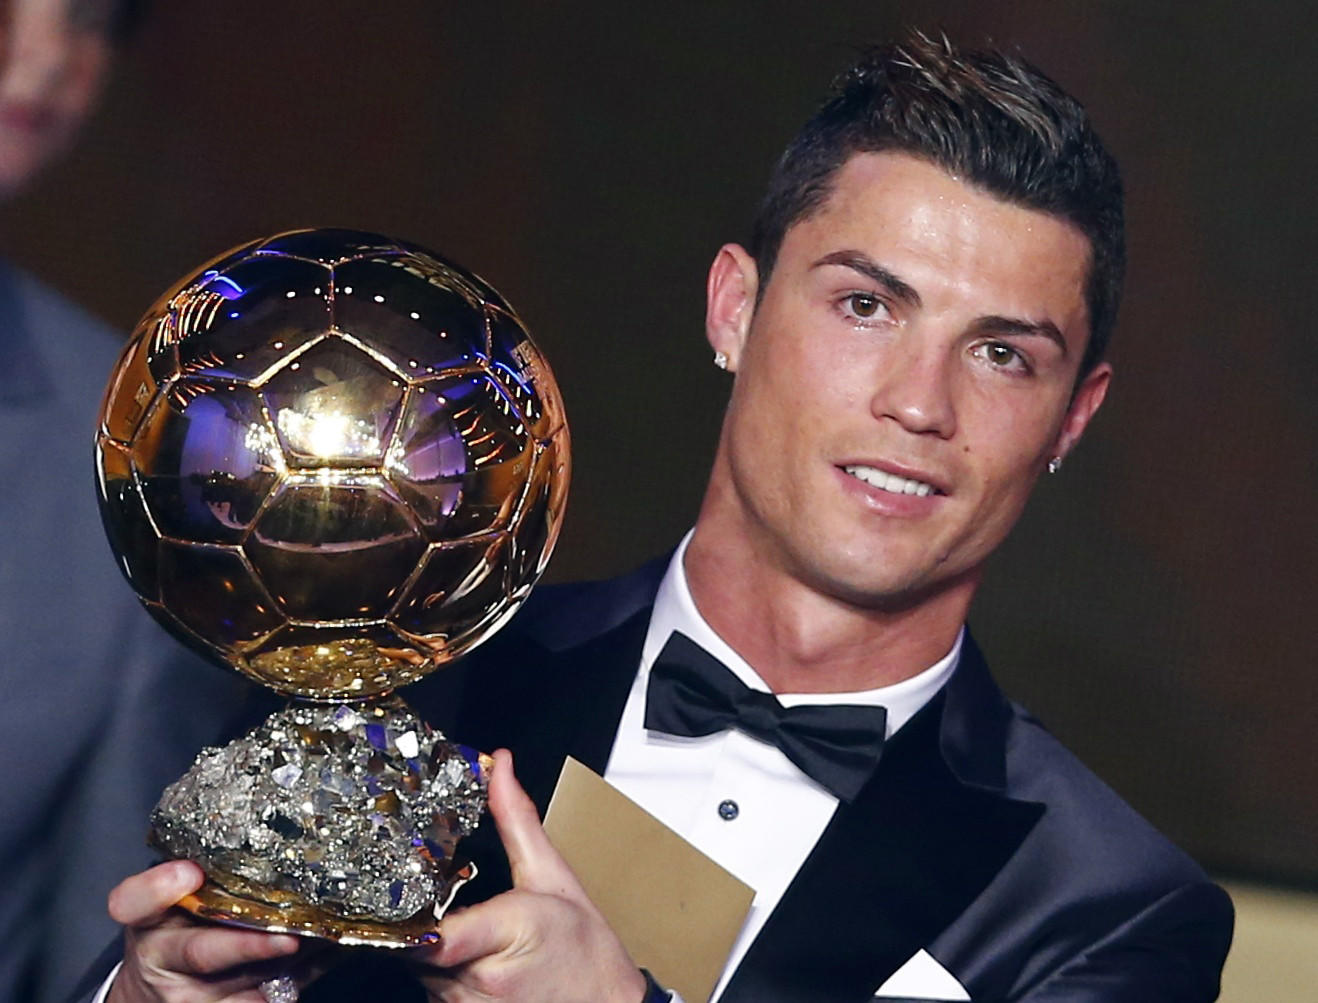 Portugal's Cristiano Ronaldo holds his trophy after being awarded the FIFA Ballon d'Or 2013 in Zurich January 13, 2014. Portugal and Real Madrid forward Cristiano Ronaldo was named the world's best footballer for the second time on Monday, preventing his great rival Lionel Messi from winning the award for a fifth year in a row.